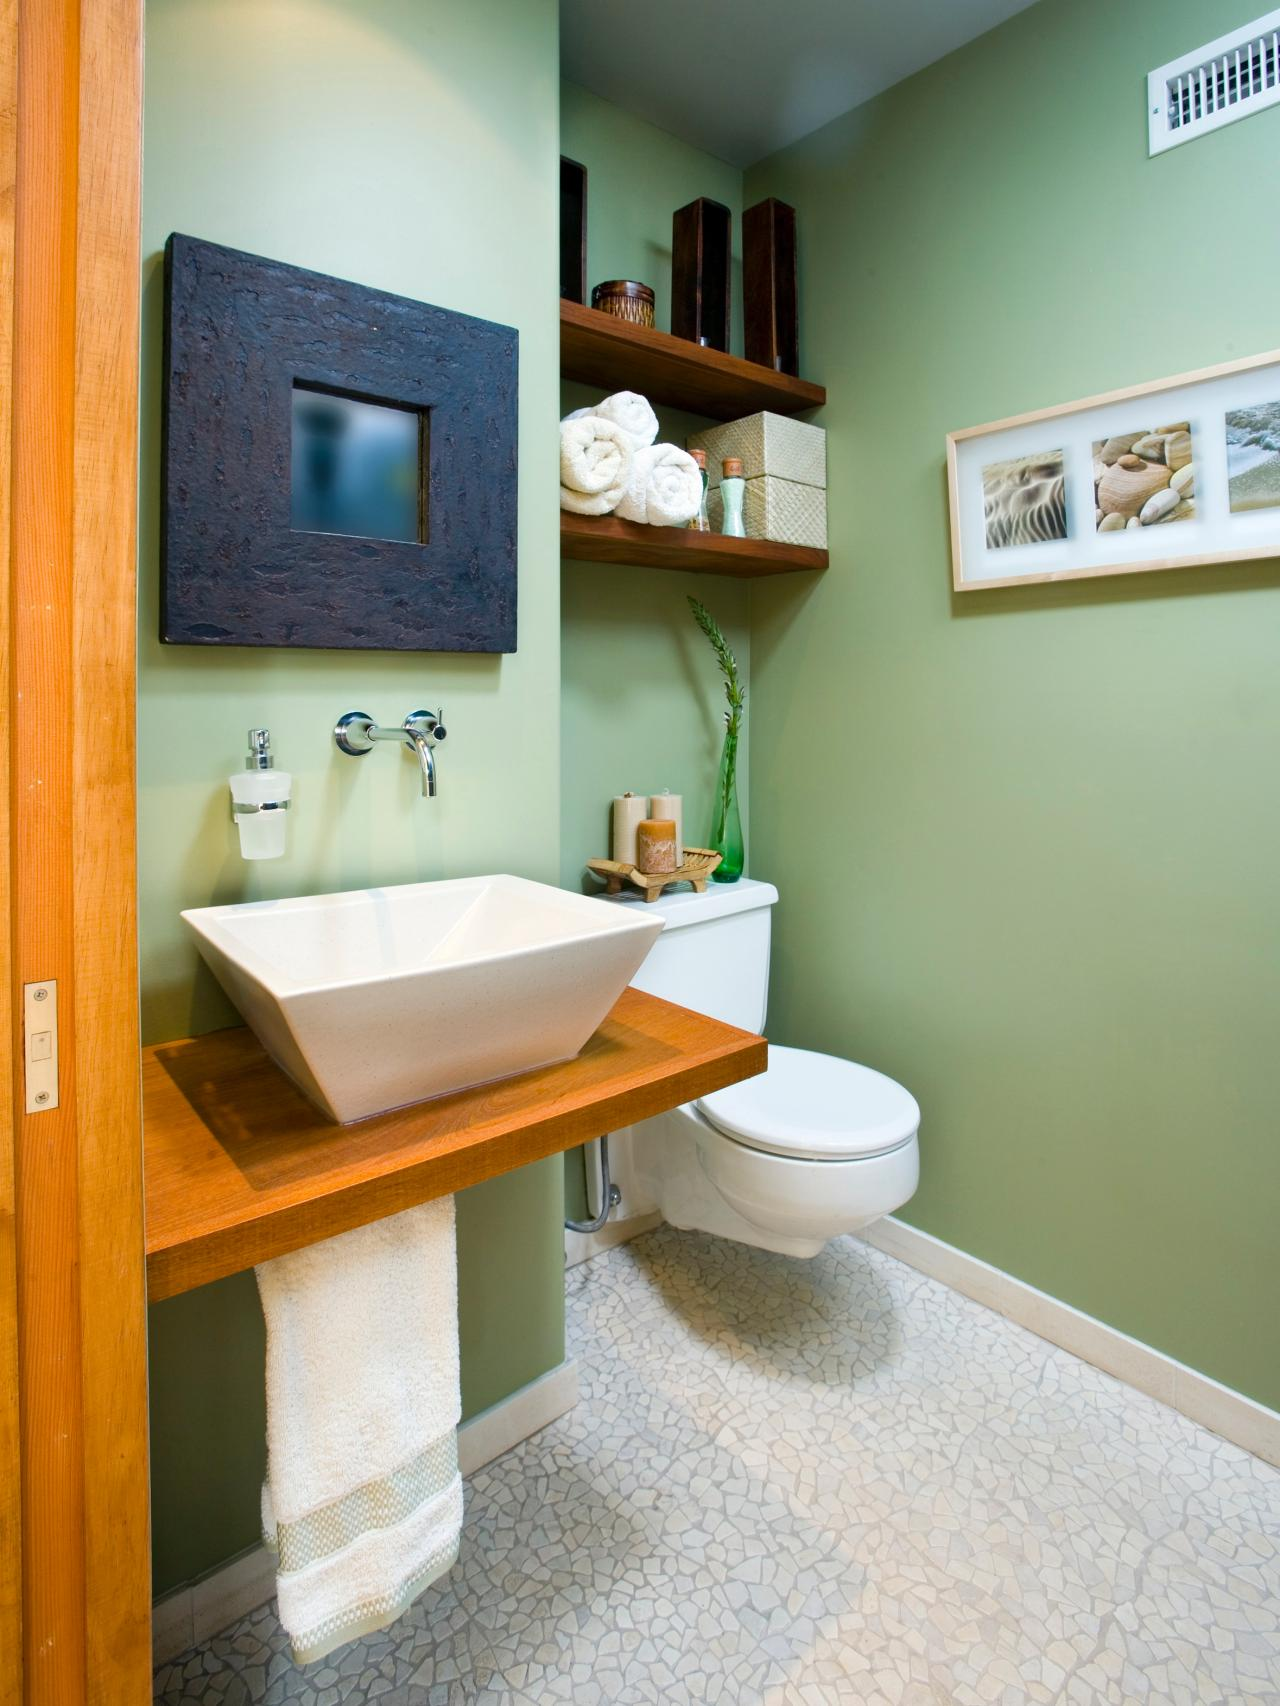 Traditional Bathroom Design Ideas Extraordinary Traditional Bathroom Designs Pictures & Ideas From Hgtv  Hgtv Inspiration Design